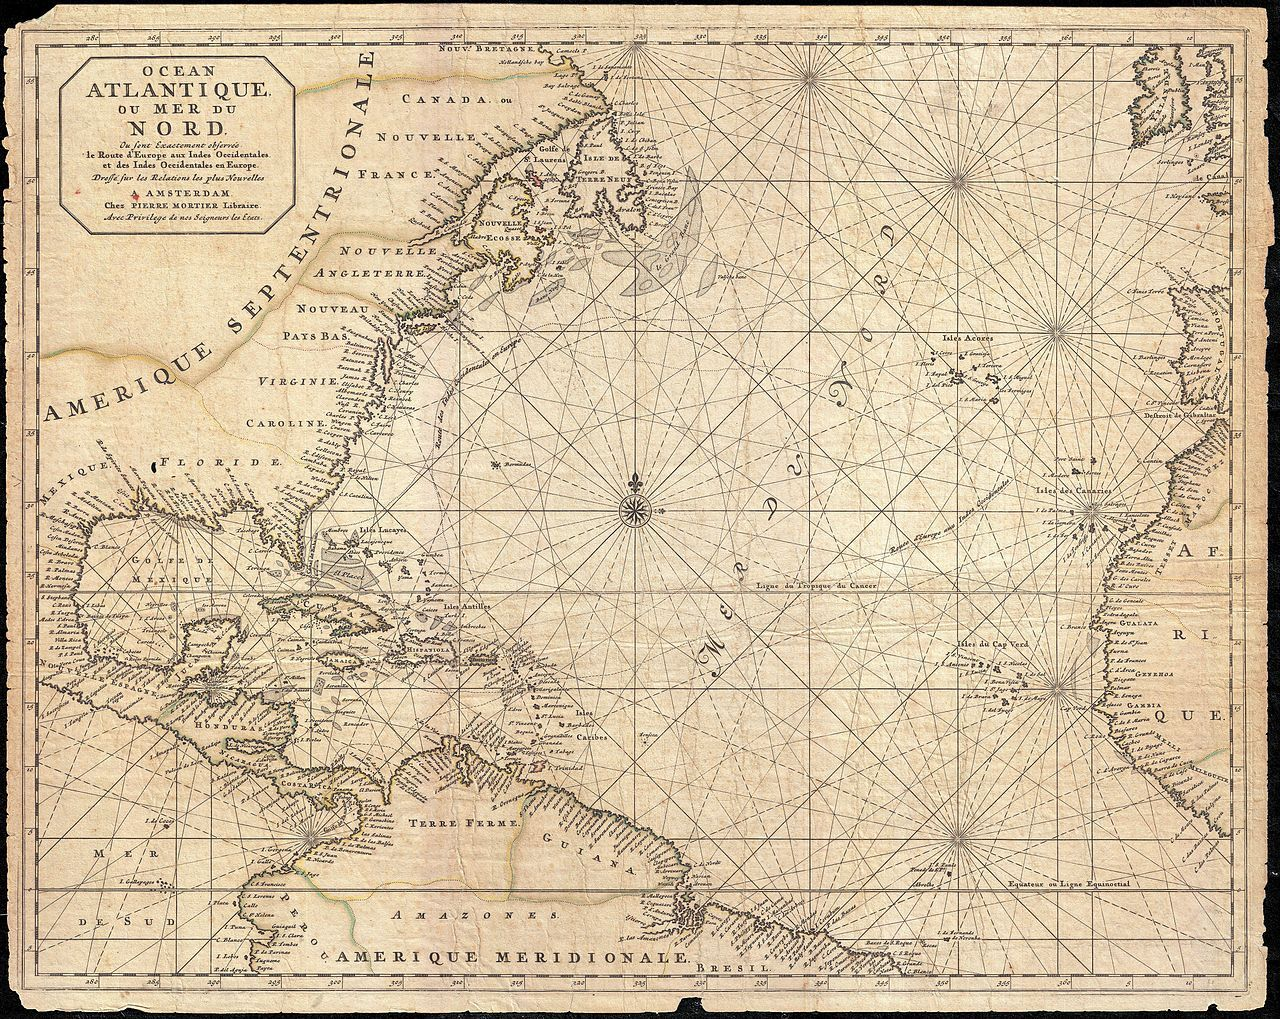 File1683 mortier map of north america the west indies and the file1683 mortier map of north america the west indies and the atlantic ocean geographicus atlantique mortier 1693g httpsgoogleblank gumiabroncs Images